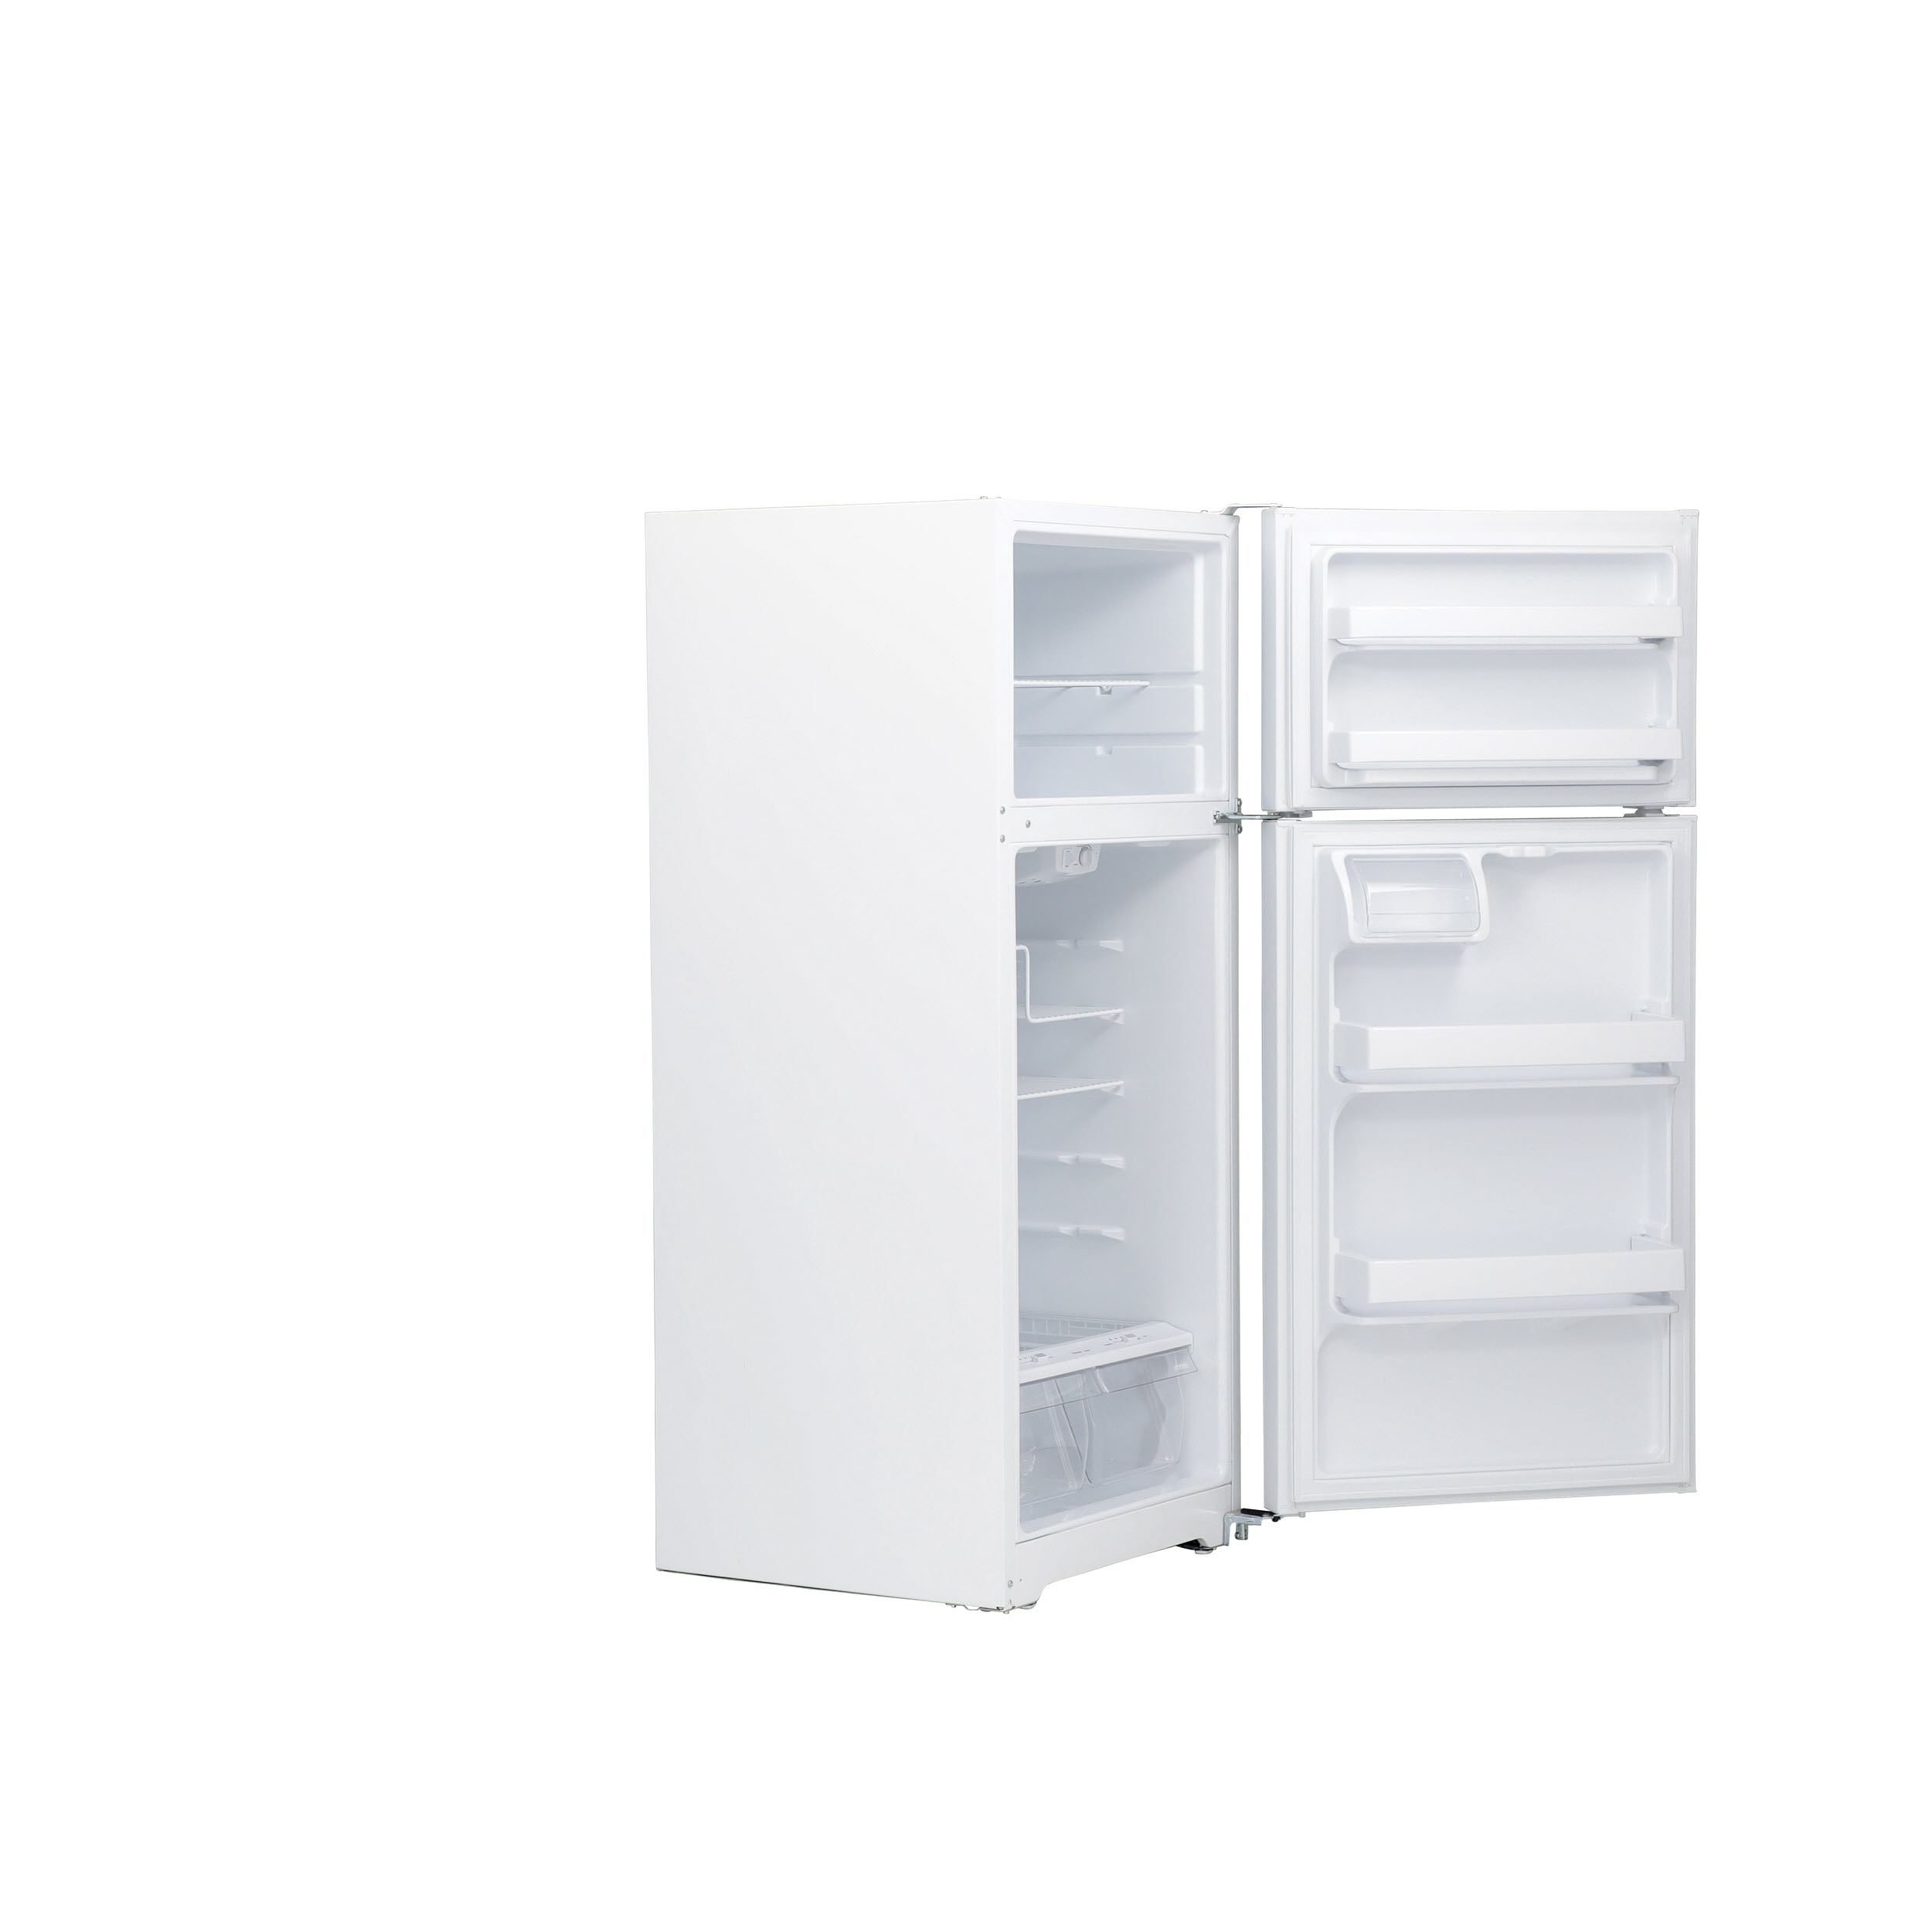 Model: GTE16DTHWW | GE GE® ENERGY STAR® 15.5 Cu. Ft. Top-Freezer Refrigerator